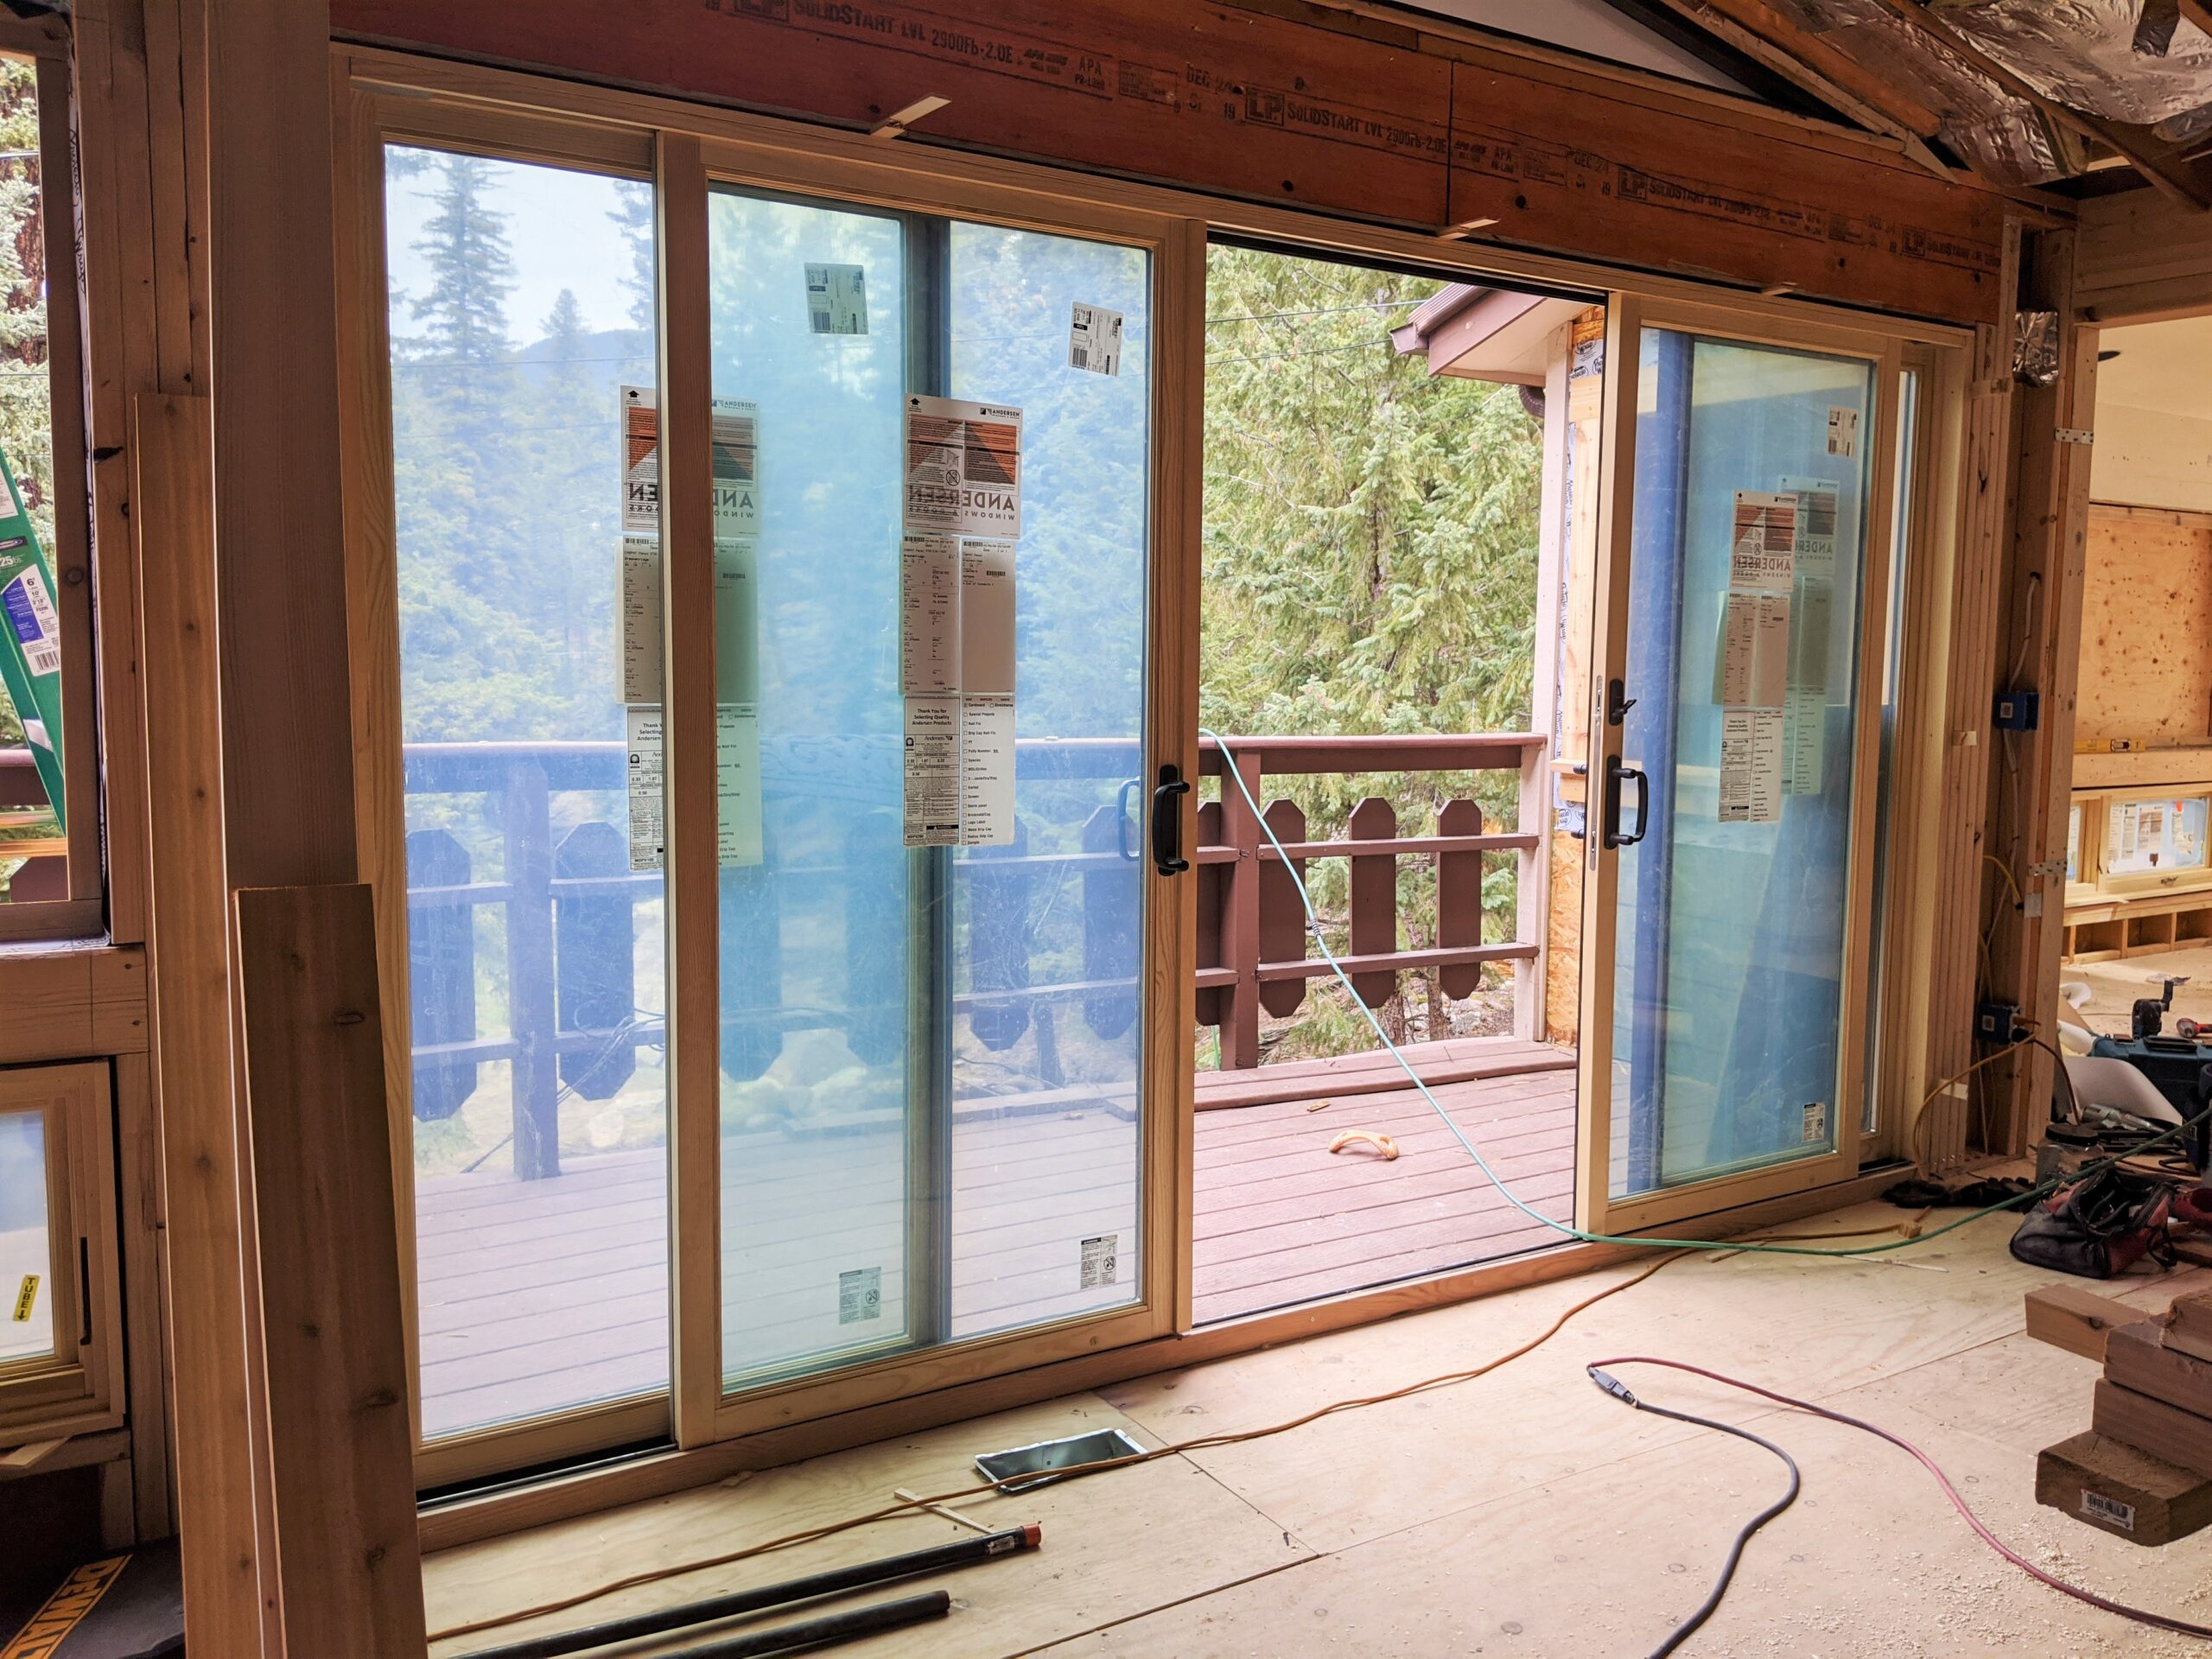 AFTER We installed this 4-paneled sliding glass door, which maximizes the views in this mountain home.